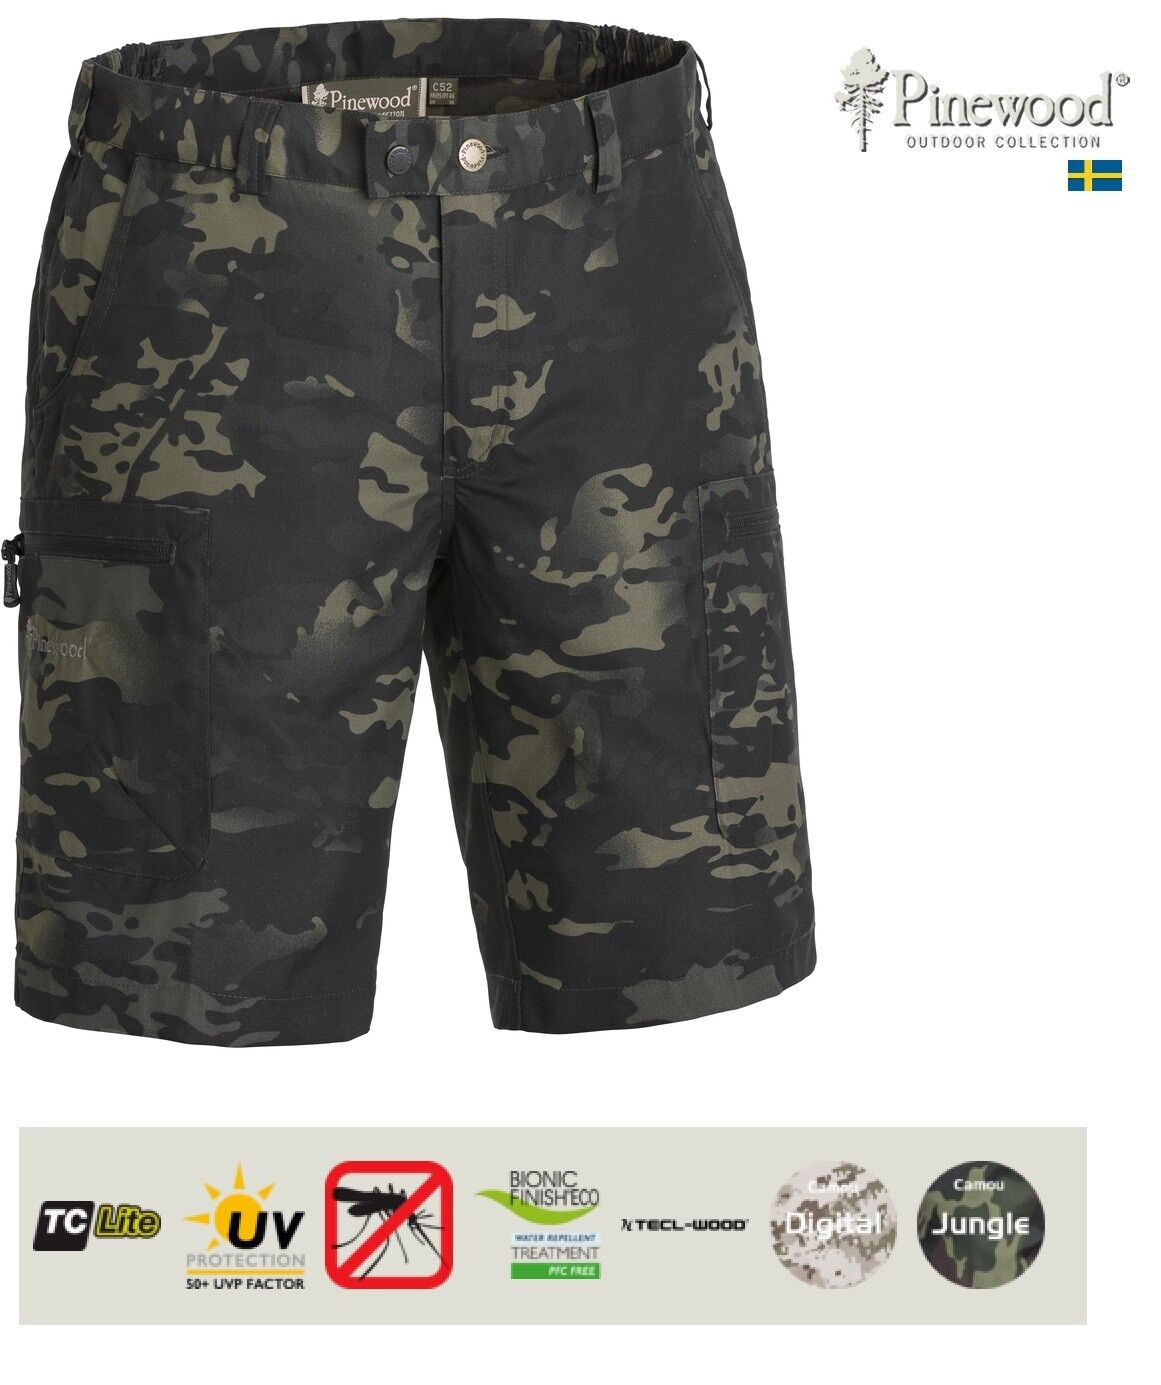 PINEWOOD  Caribou Camou TC  Shorts  very popular